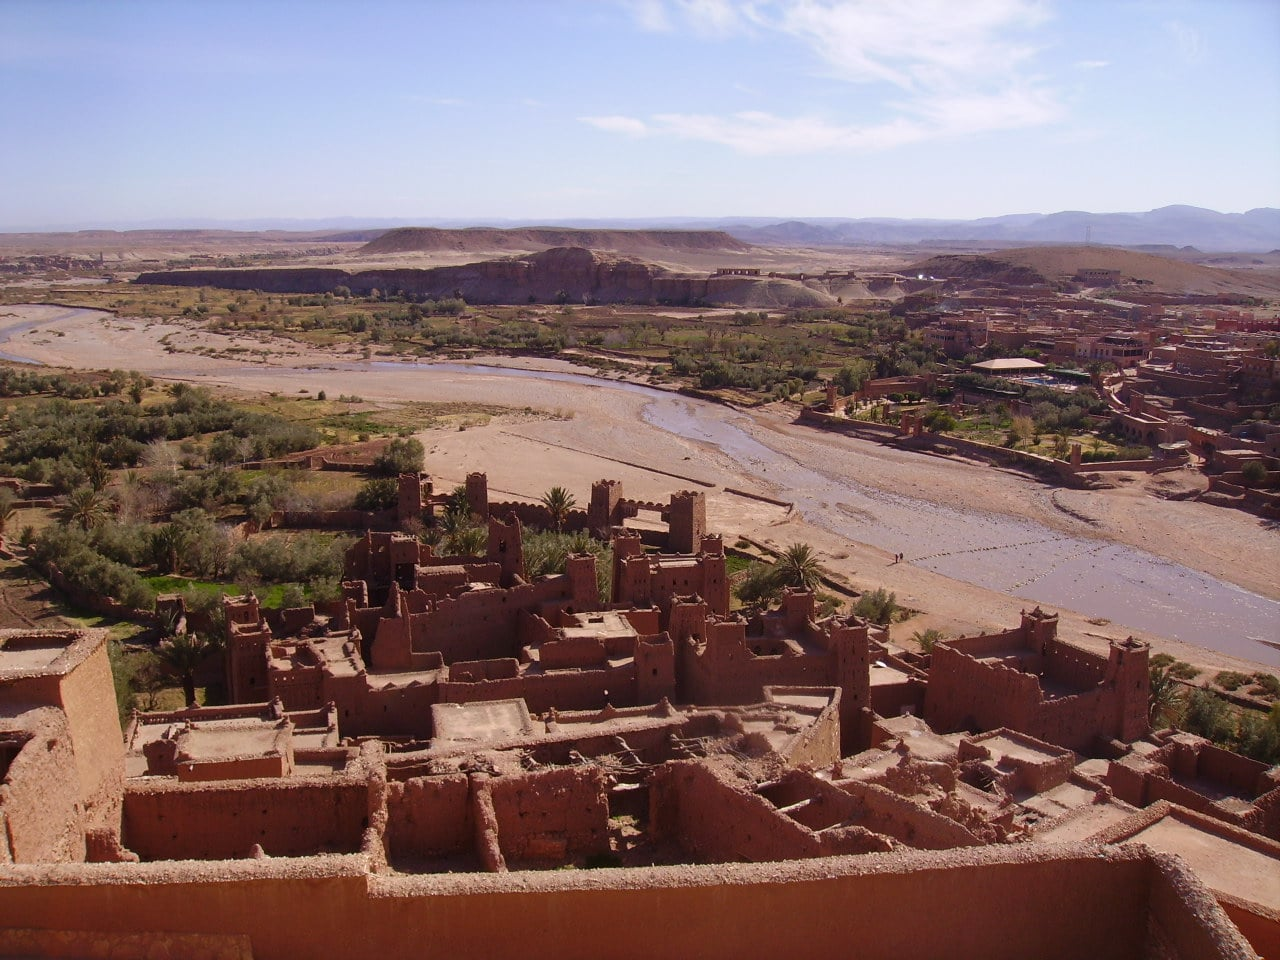 The fascinating ksar of Ait Benhaddou - Wandering Life